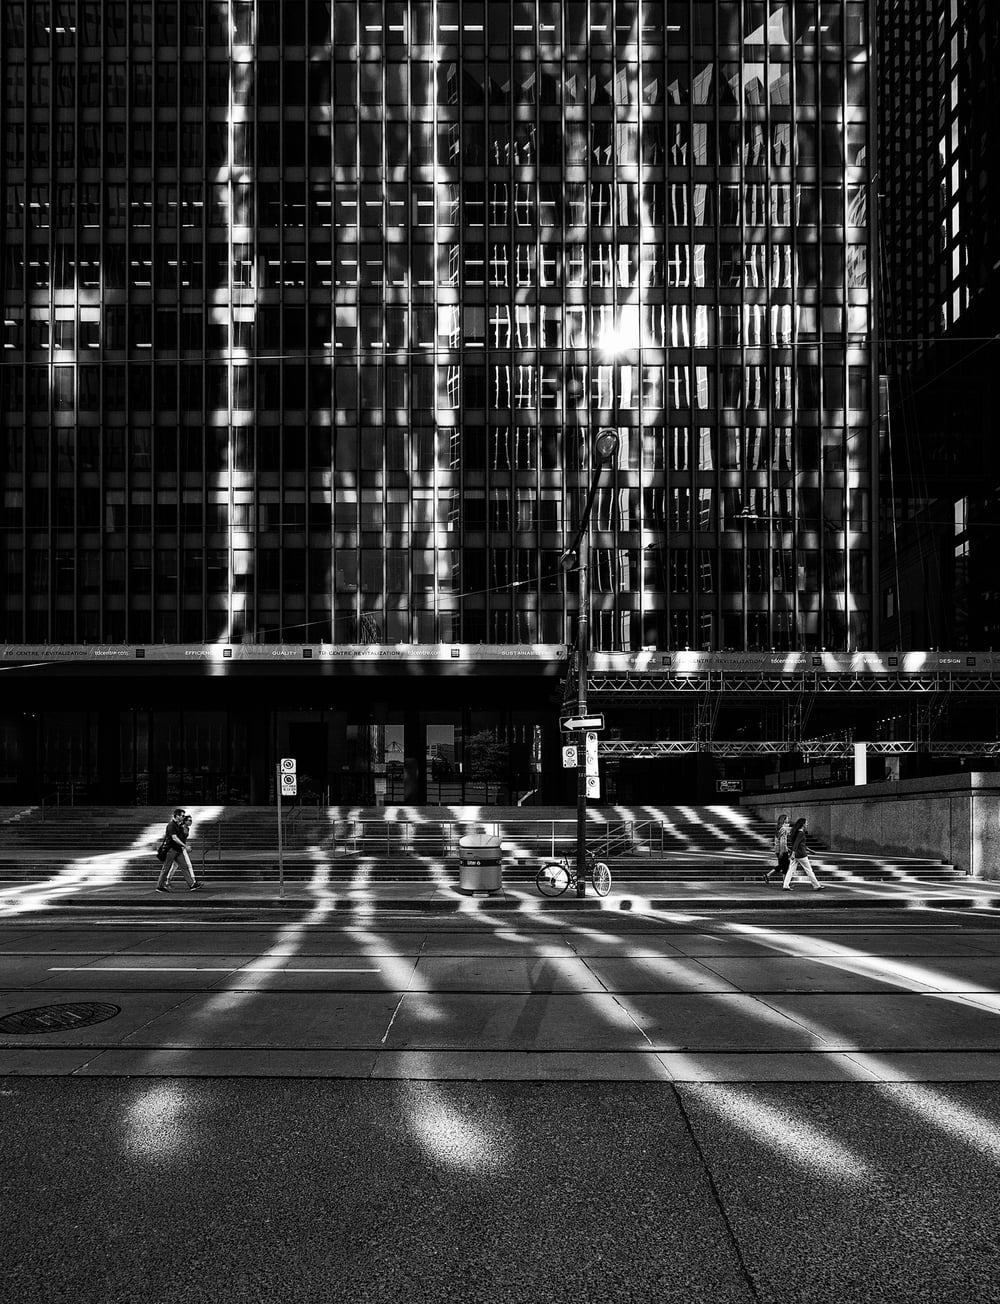 wellington-street_toronto-dominion-centre_reflection-lines_01bwc.jpg